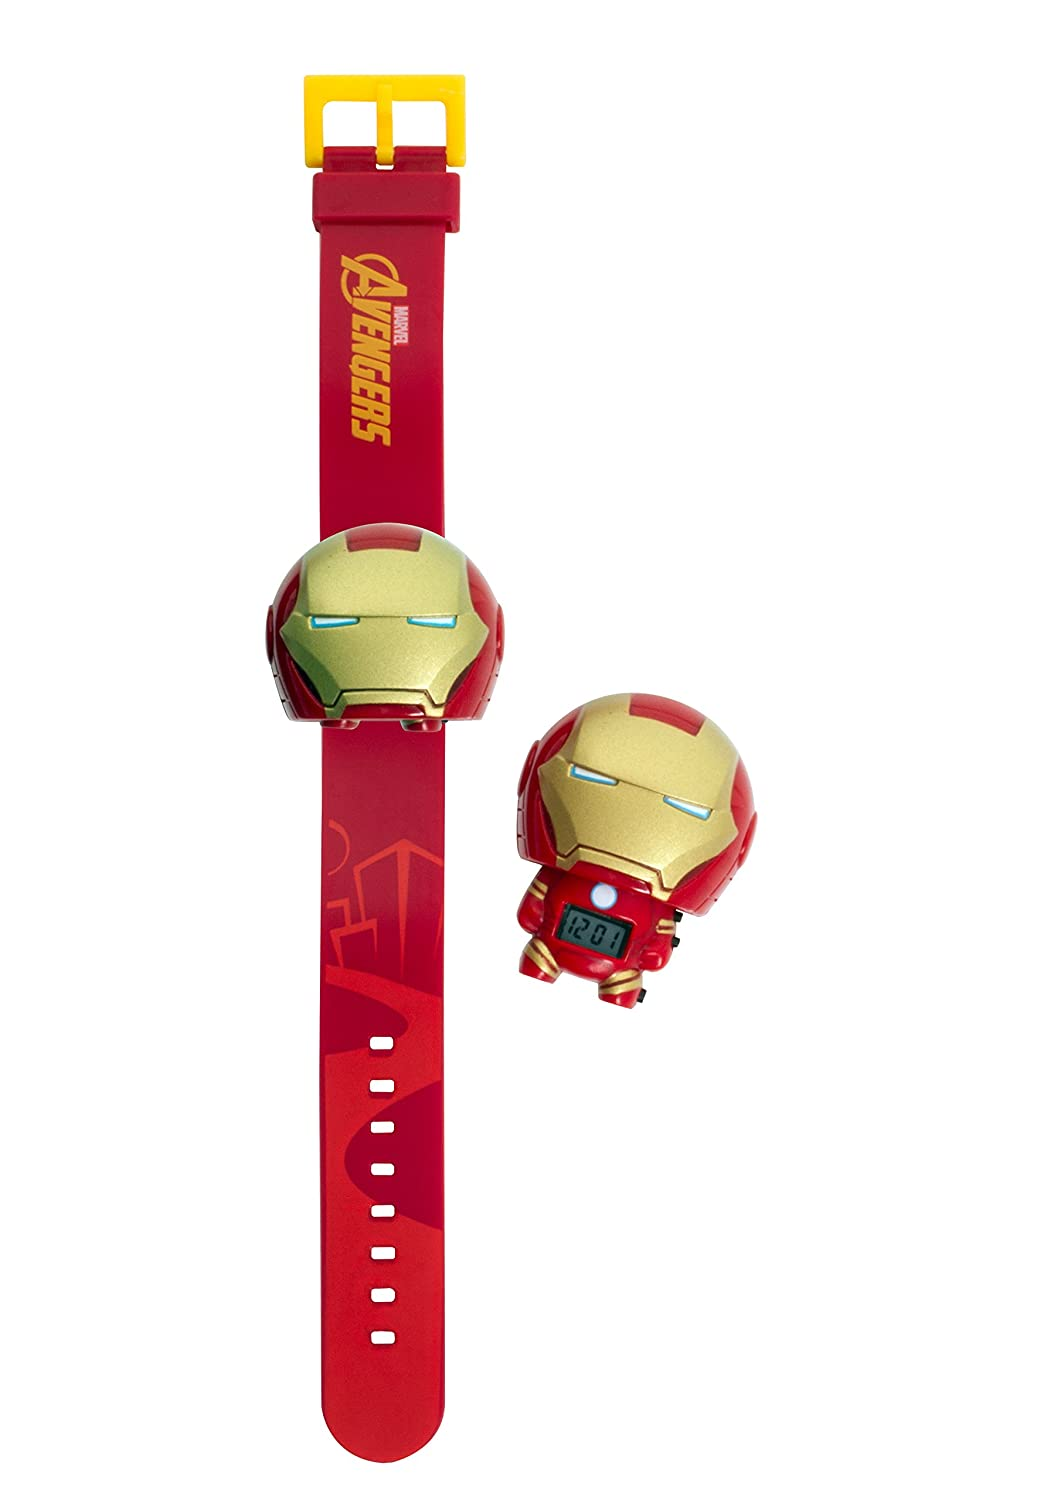 Amazon.com: BulbBotz Marvel 2021142 Iron Man Kids Light up Watch | red/Gold | Plastic | Digital | LCD Display| boy Girl | Official: Bulb Botz: Watches